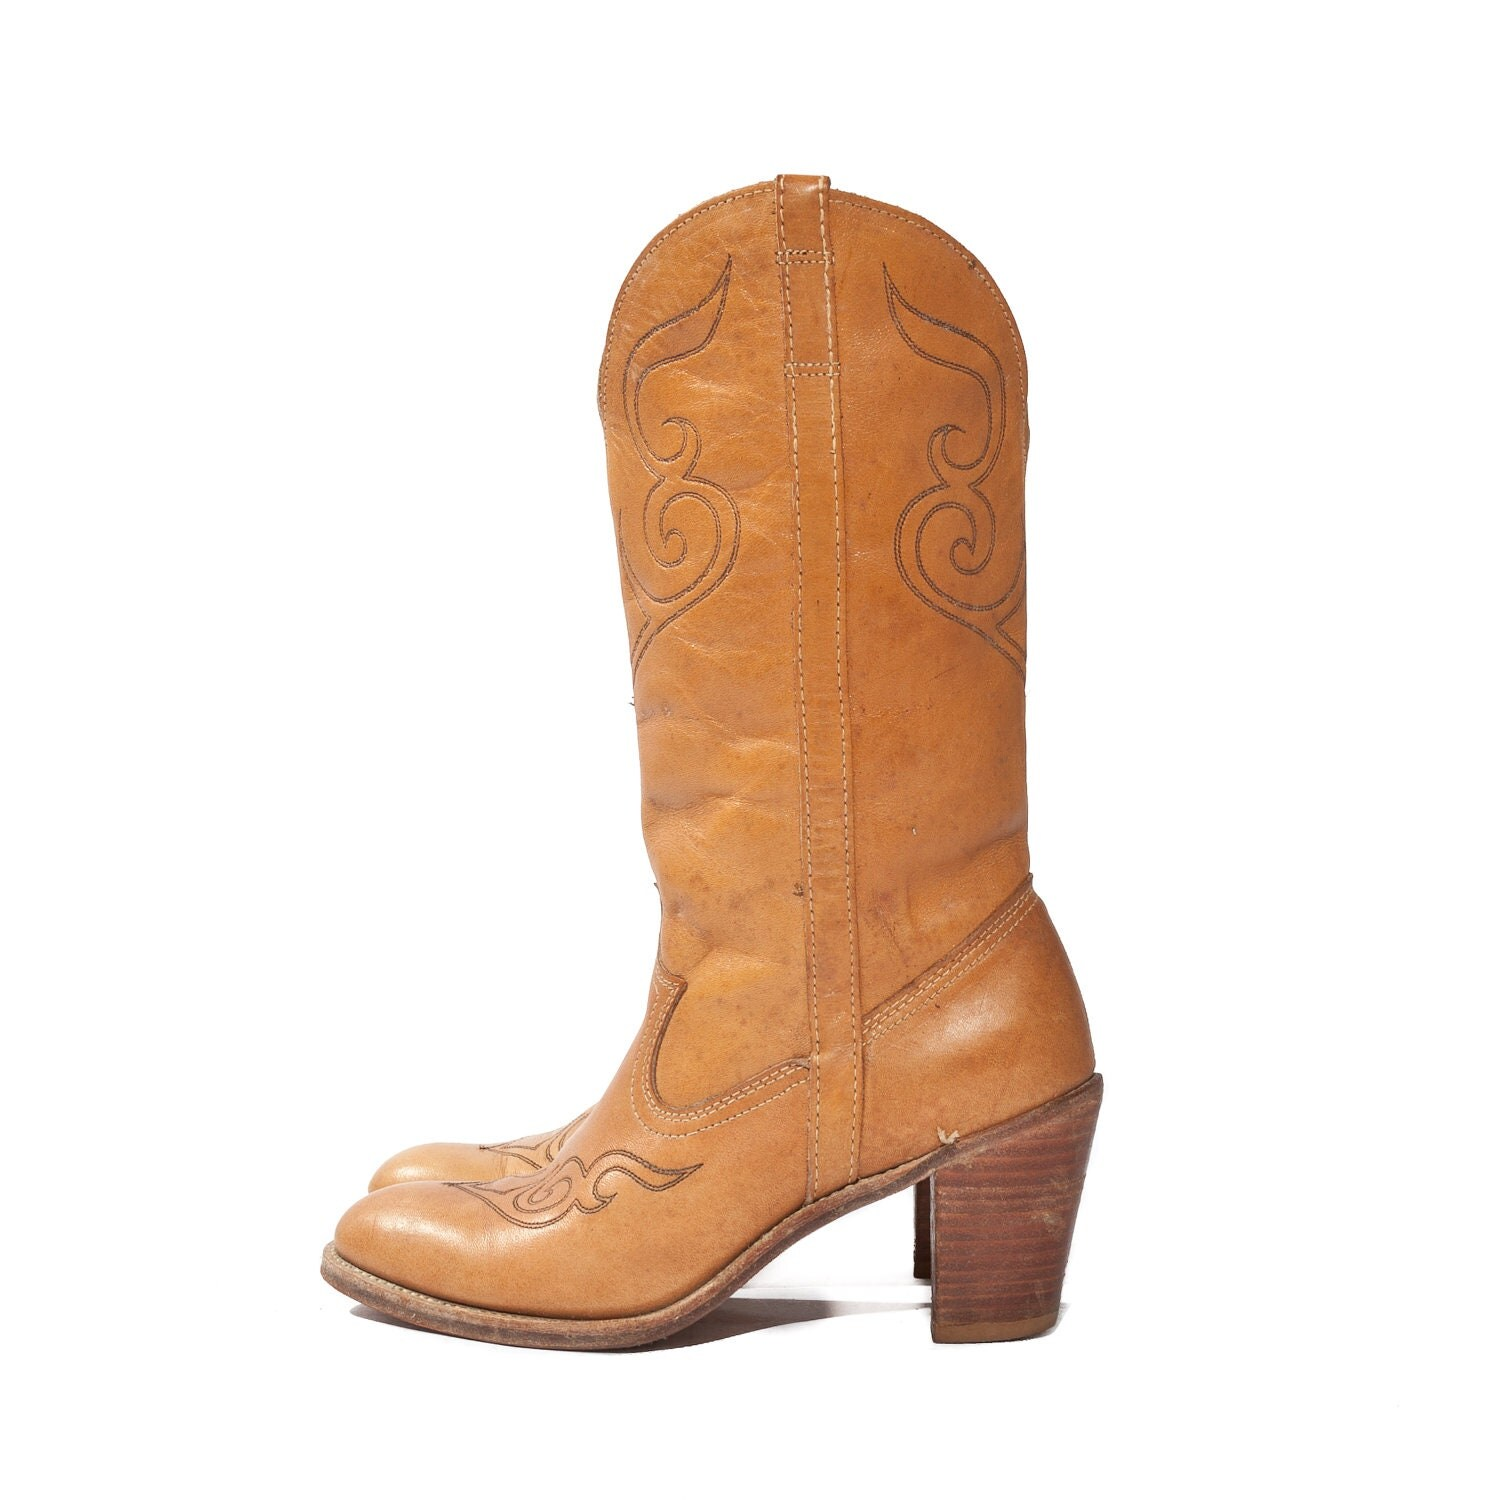 Butterscotch Western Boots Stacked Heel Cowgirl by Acme Dingo size  7